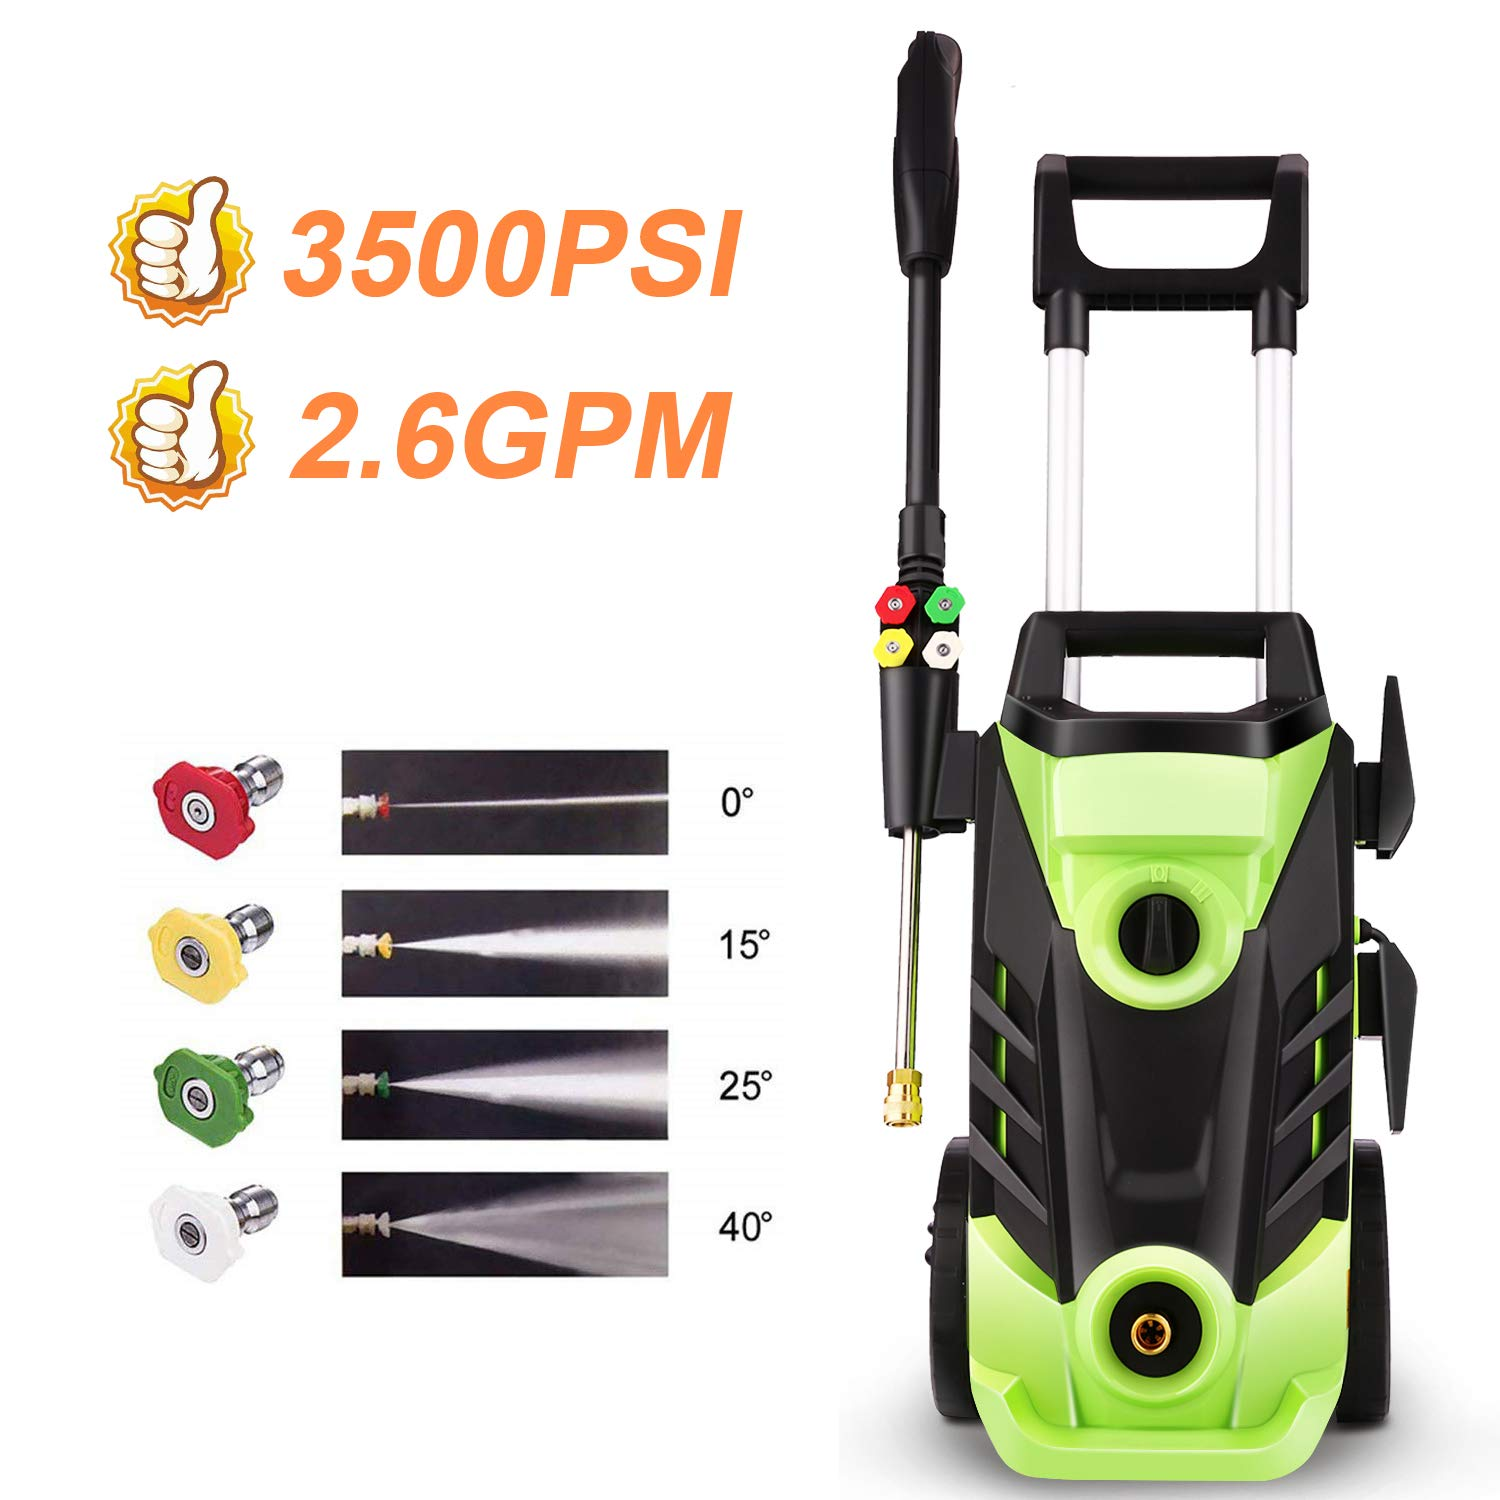 Homdox 3500PSI Electric Pressure Washer, 1800W Power Washer, 2.6GPM High Pressure Washer, Professional Washer Cleaner,4 Nozzles,HM5226